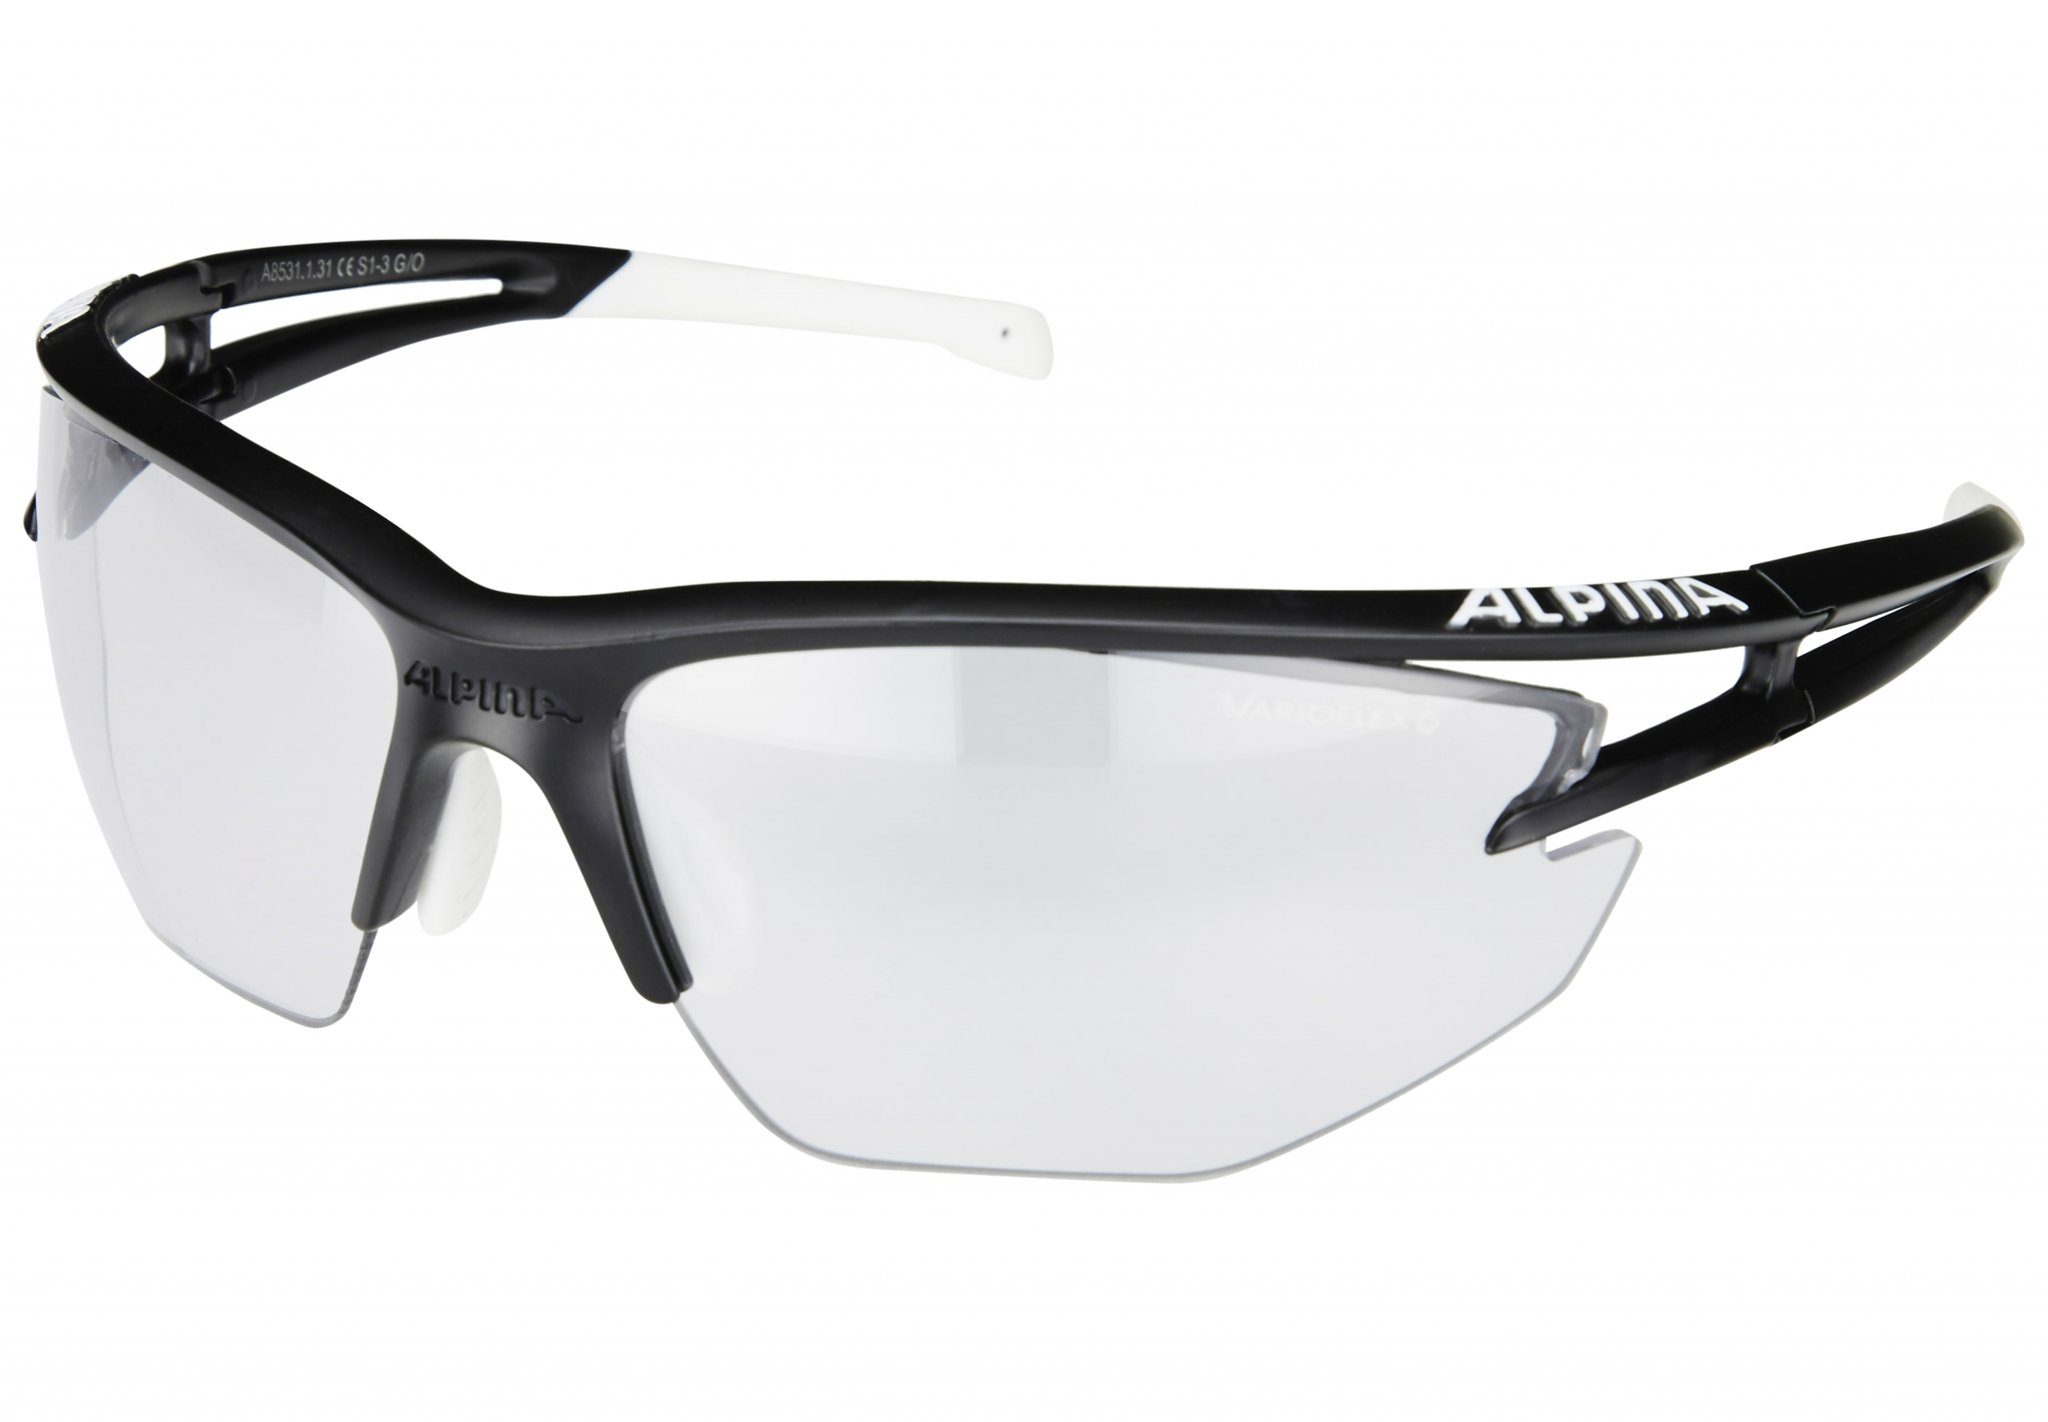 Alpina Radsportbrille »Eye-5 Shield VL+«